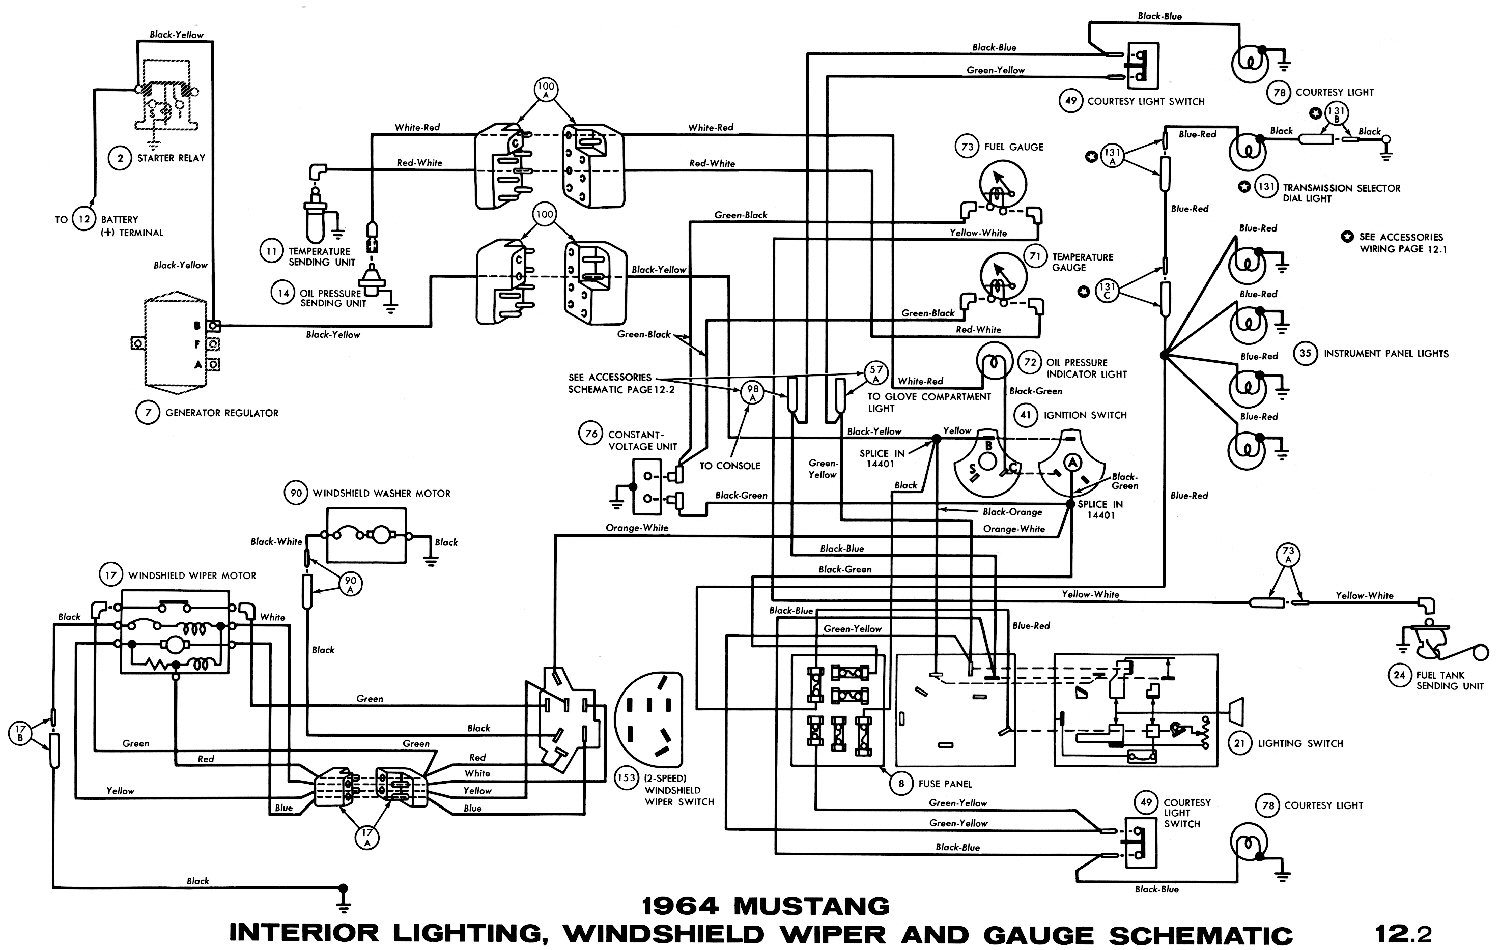 1969 Mustang Fuse Panel Diagram Wiring Libraries 1999 Box Layout 1964 Ford Third Level1964